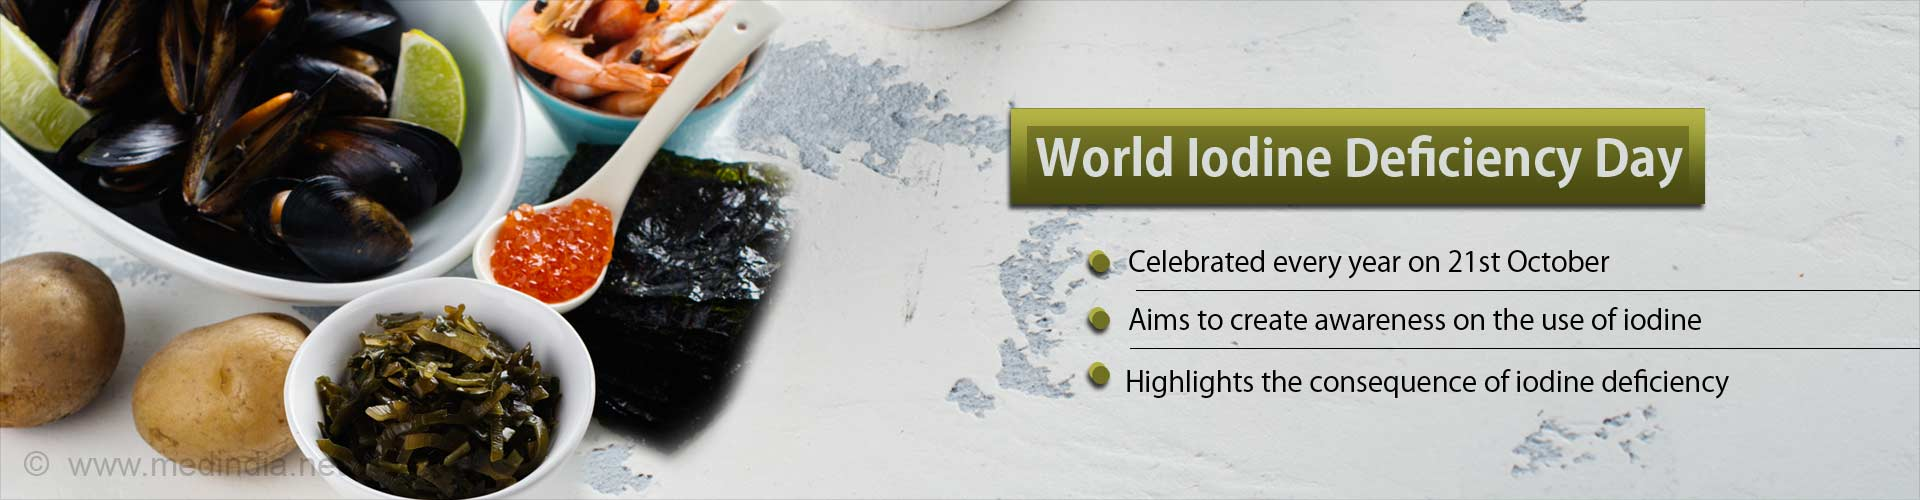 World Iodine Deficiency Day